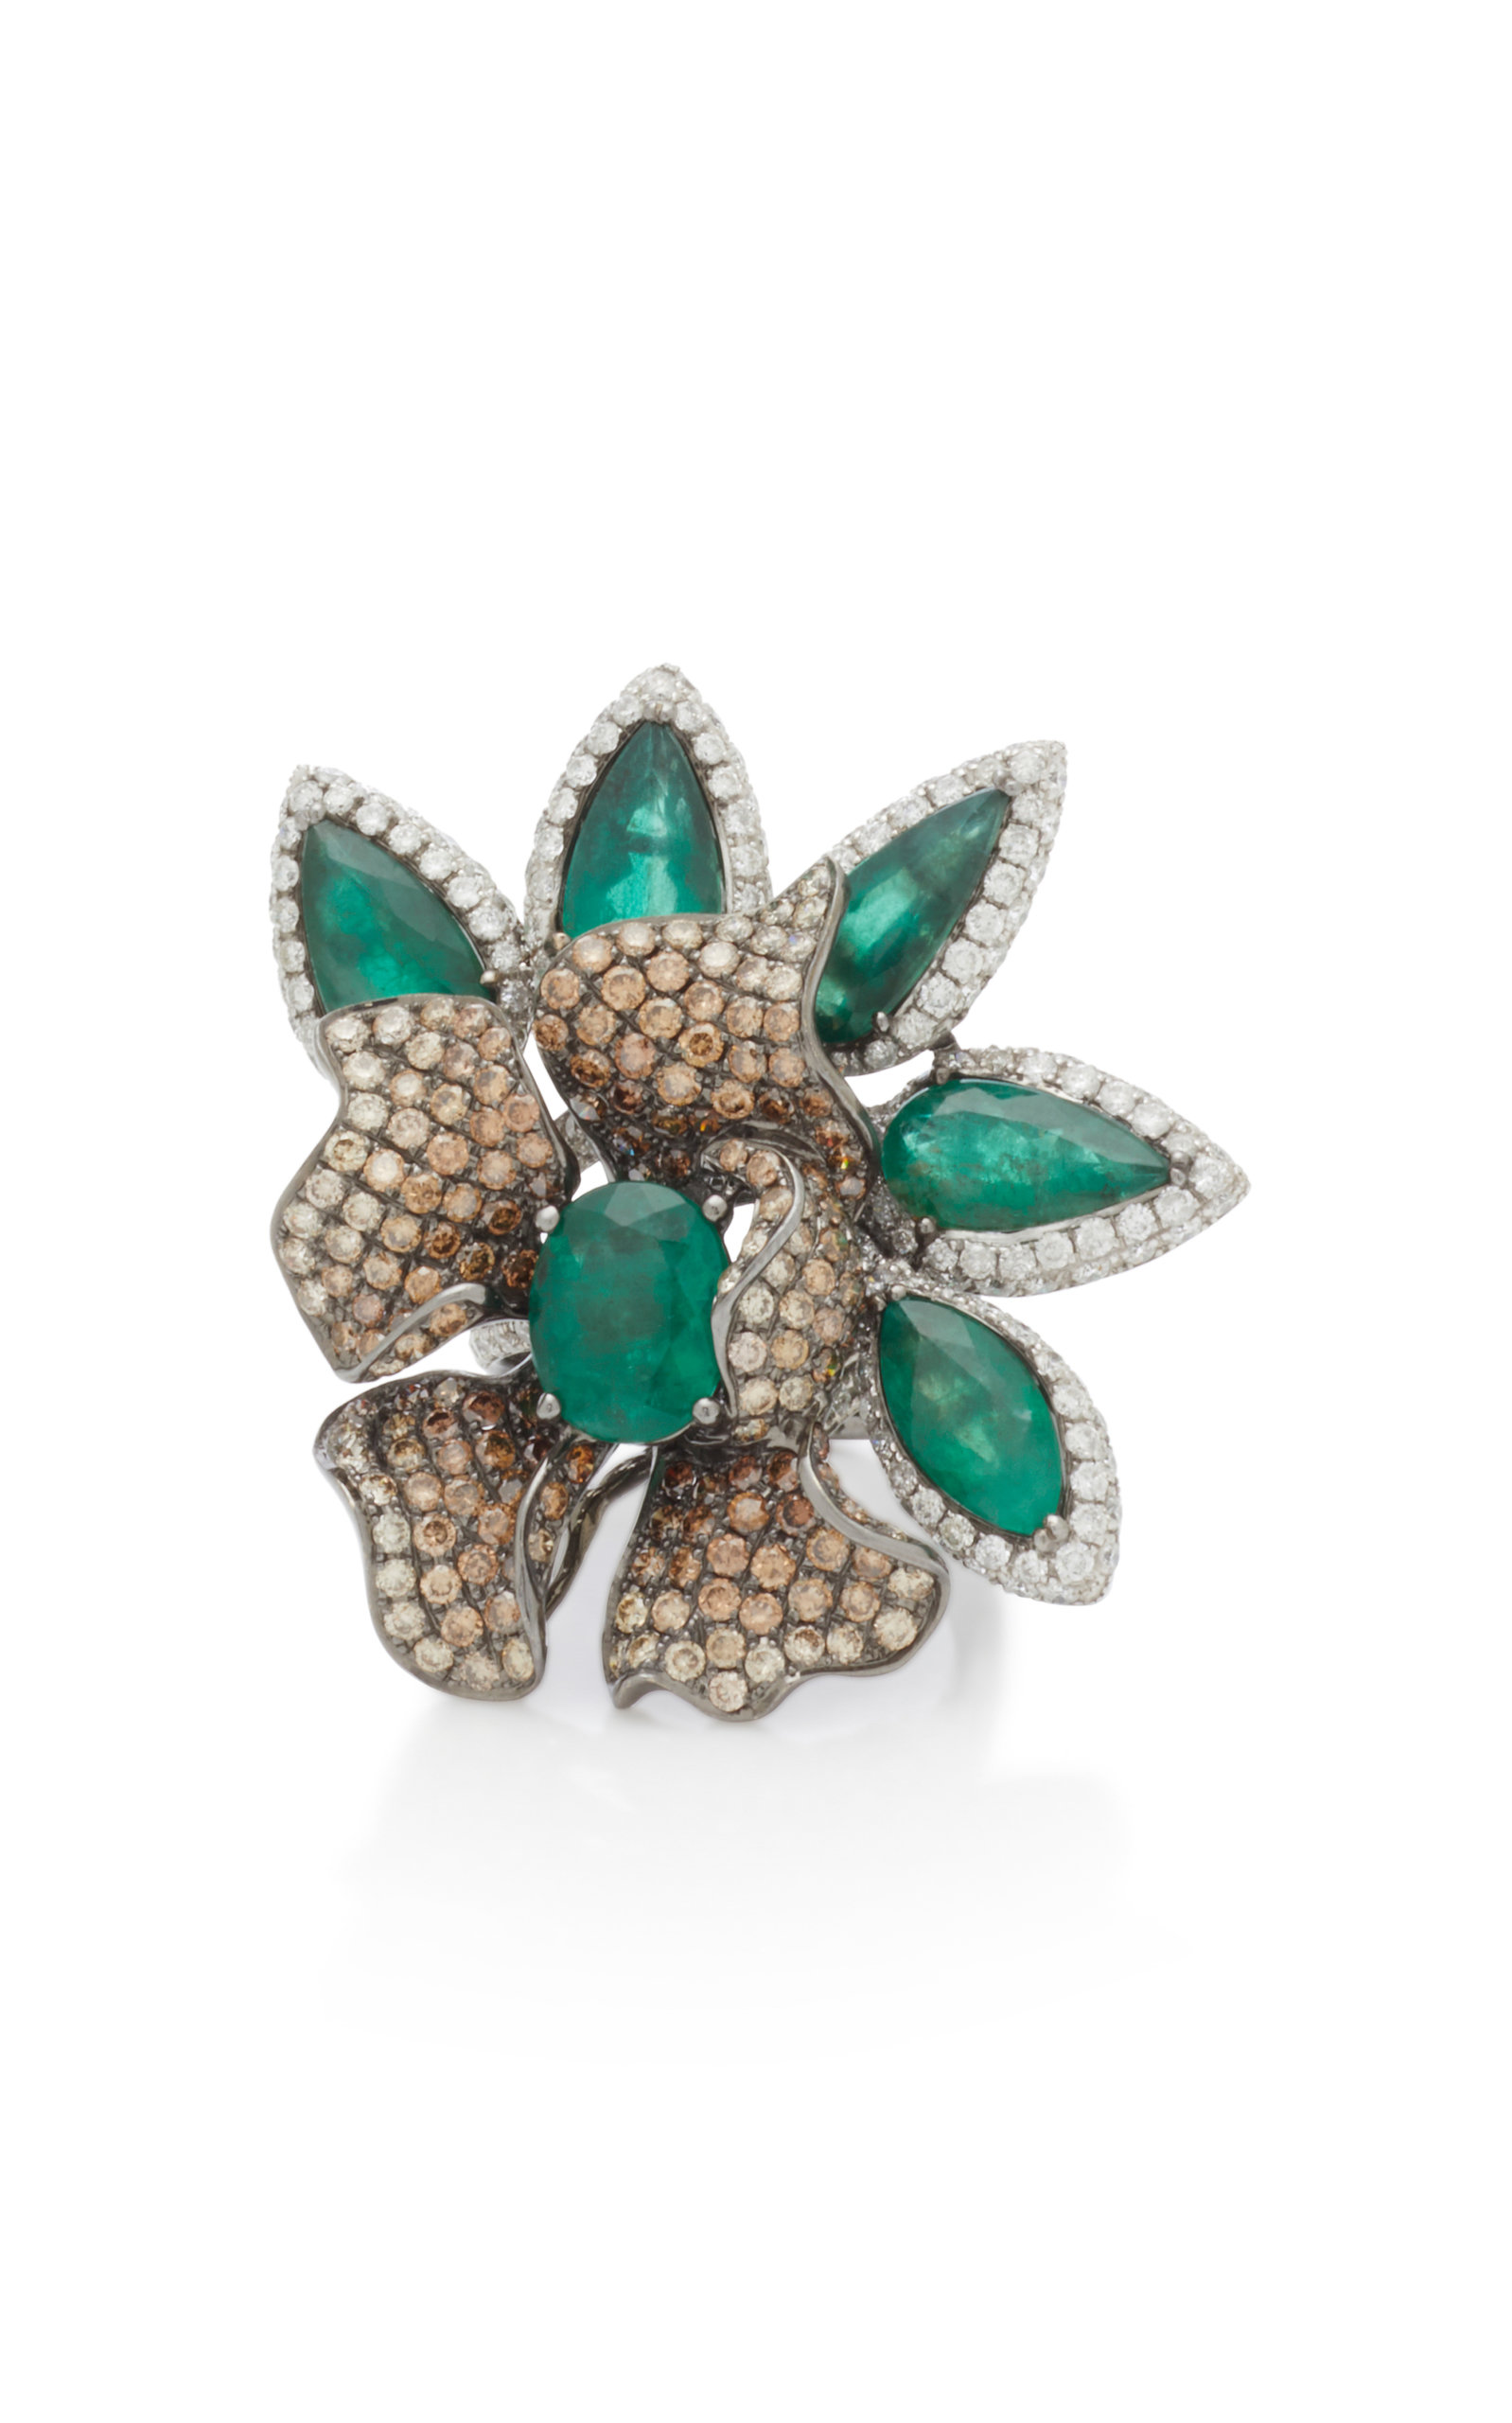 WENDY YUE 18K White Gold Emerald And Diamond Ring in Green